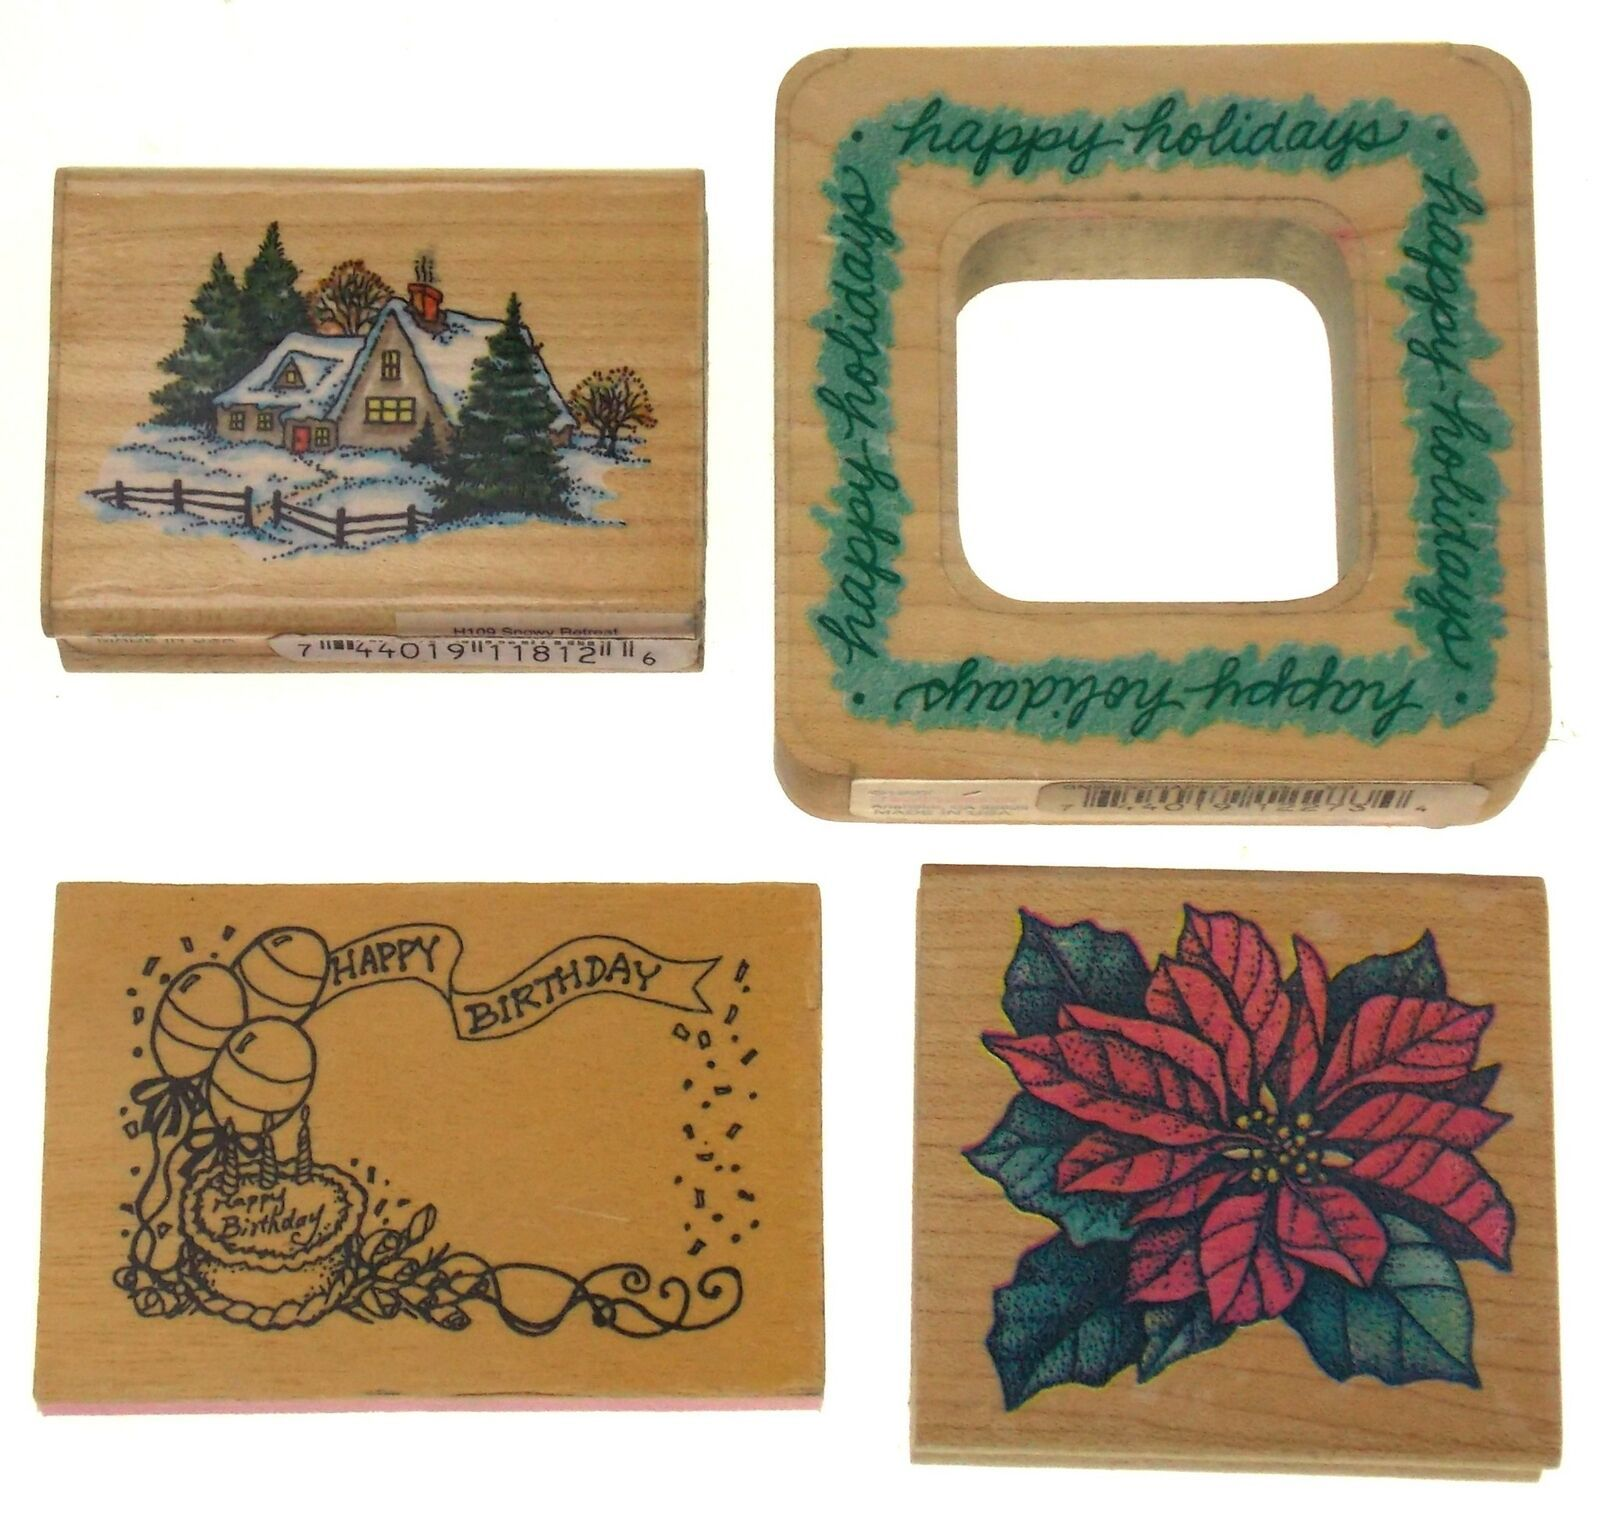 Stampendous Lot of 4 Rubber Stamps Happy Holidays Poinsettia Snowy Retreat Bday - $3.39